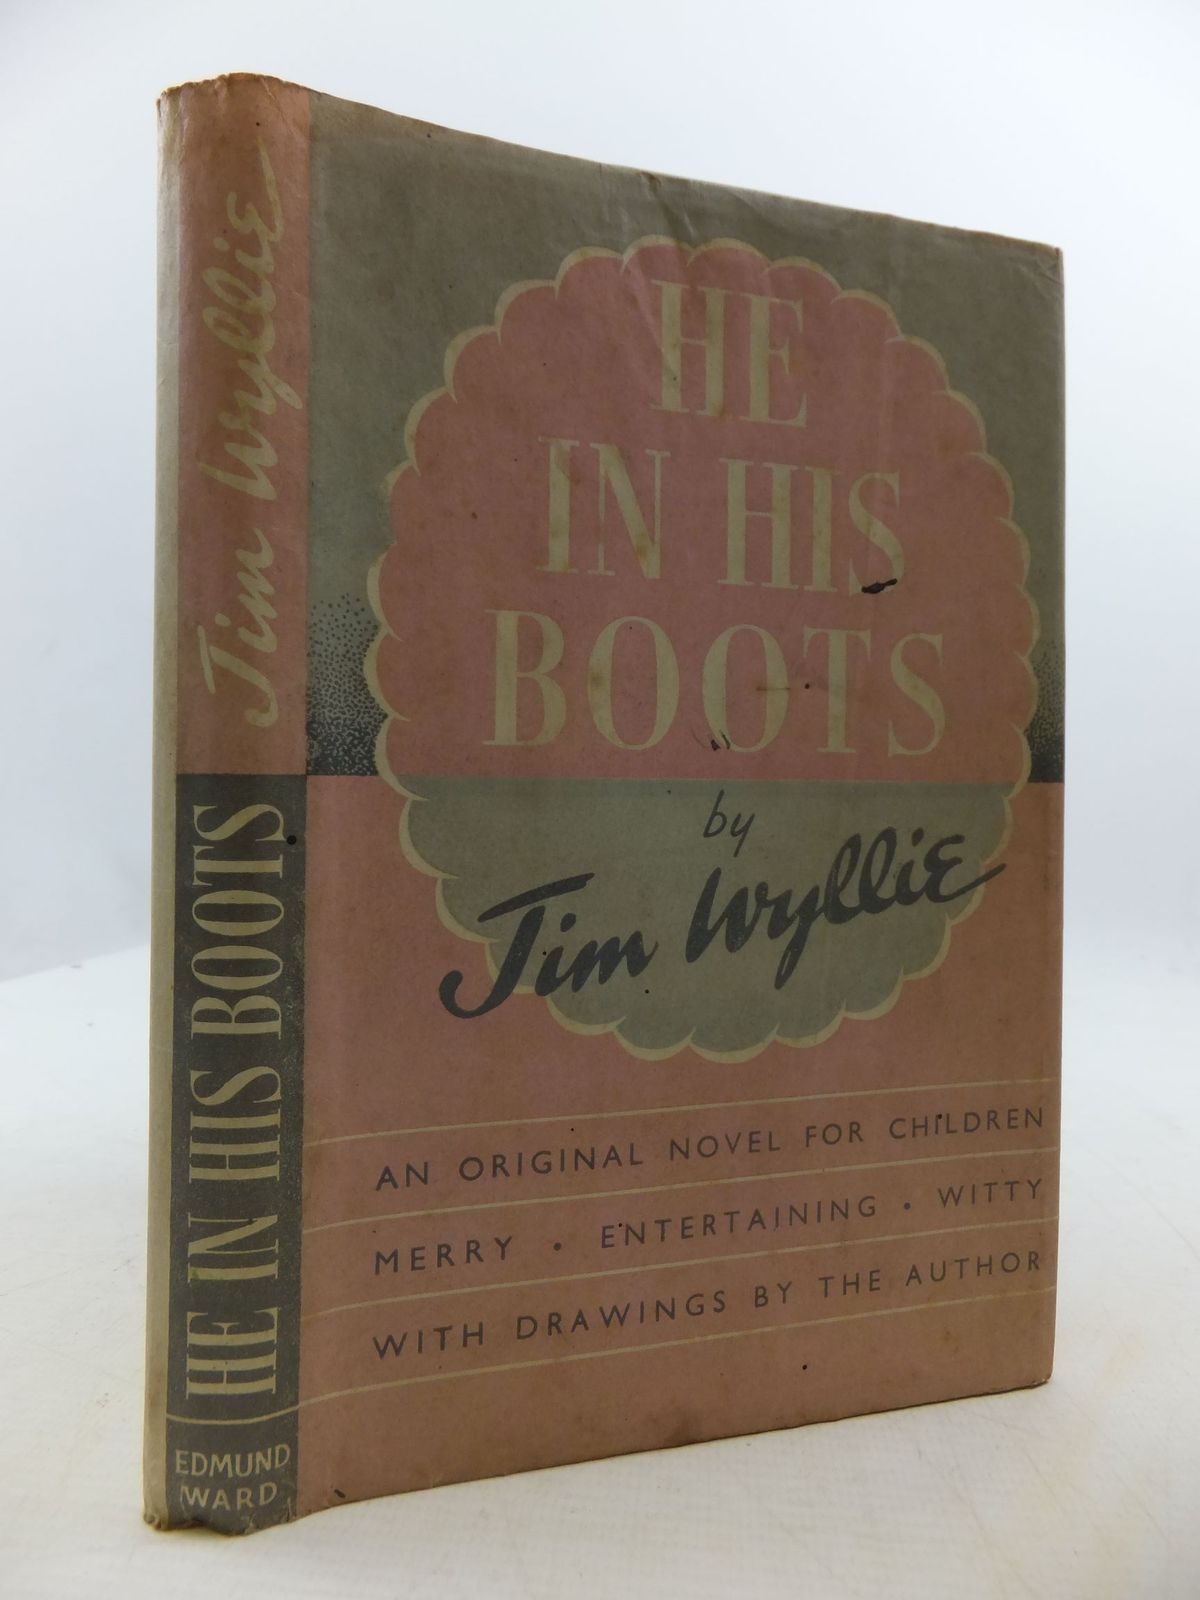 Photo of HE IN HIS BOOTS written by Wyllie, Jim illustrated by Wyllie, Jim published by Edmund Ward (STOCK CODE: 2111050)  for sale by Stella & Rose's Books